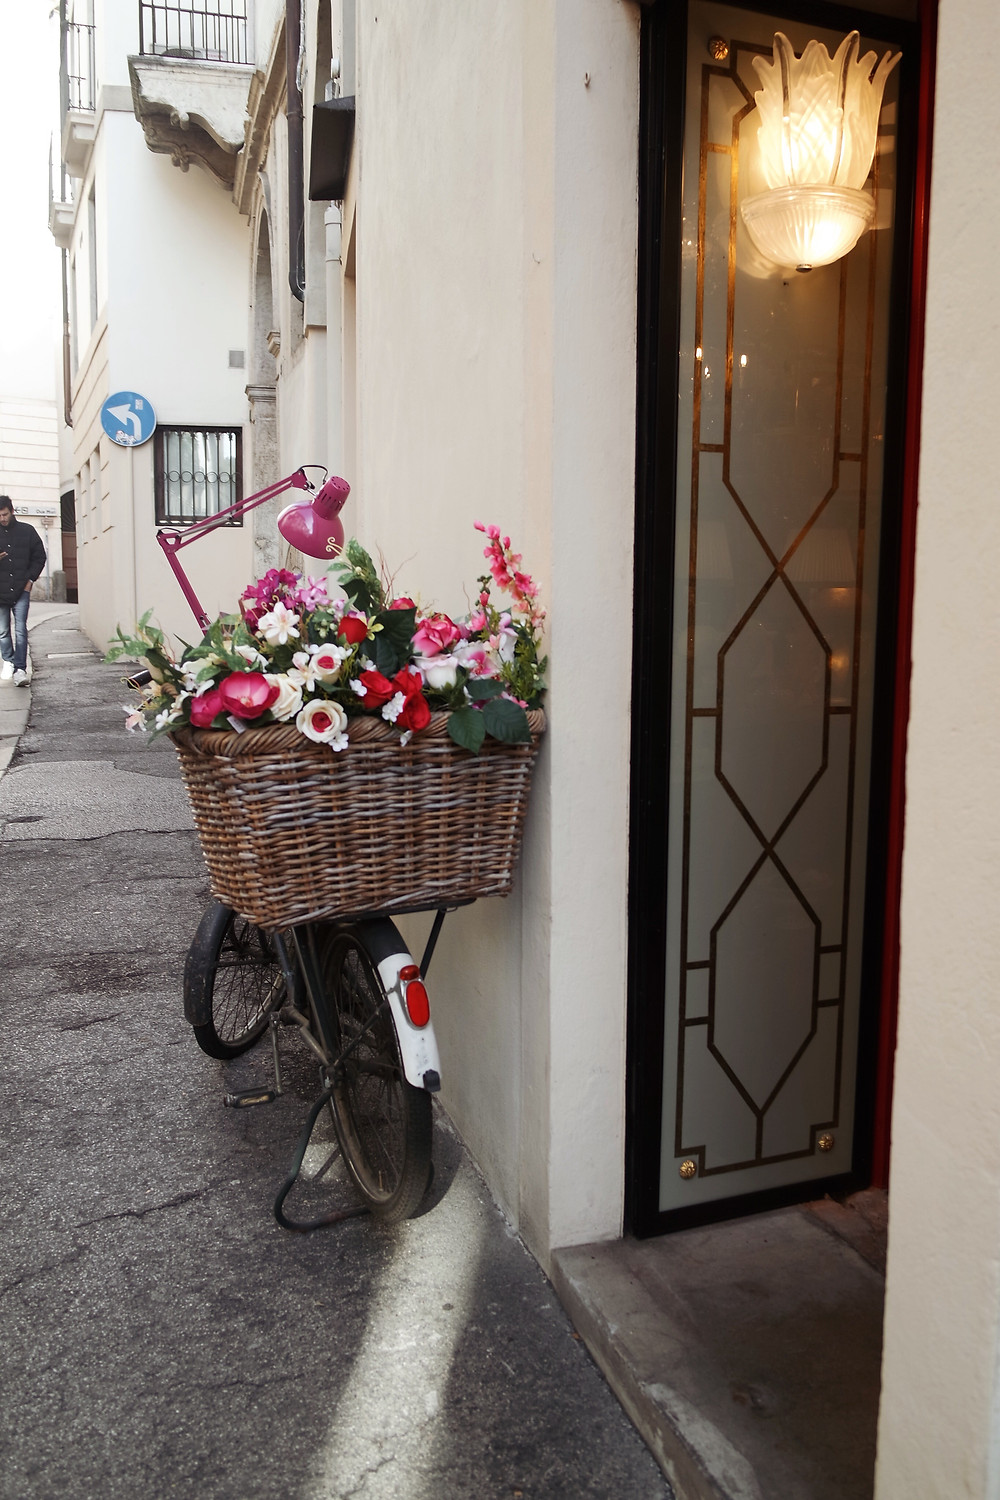 Bicycle parked next to a white building with a basket full of flowers.